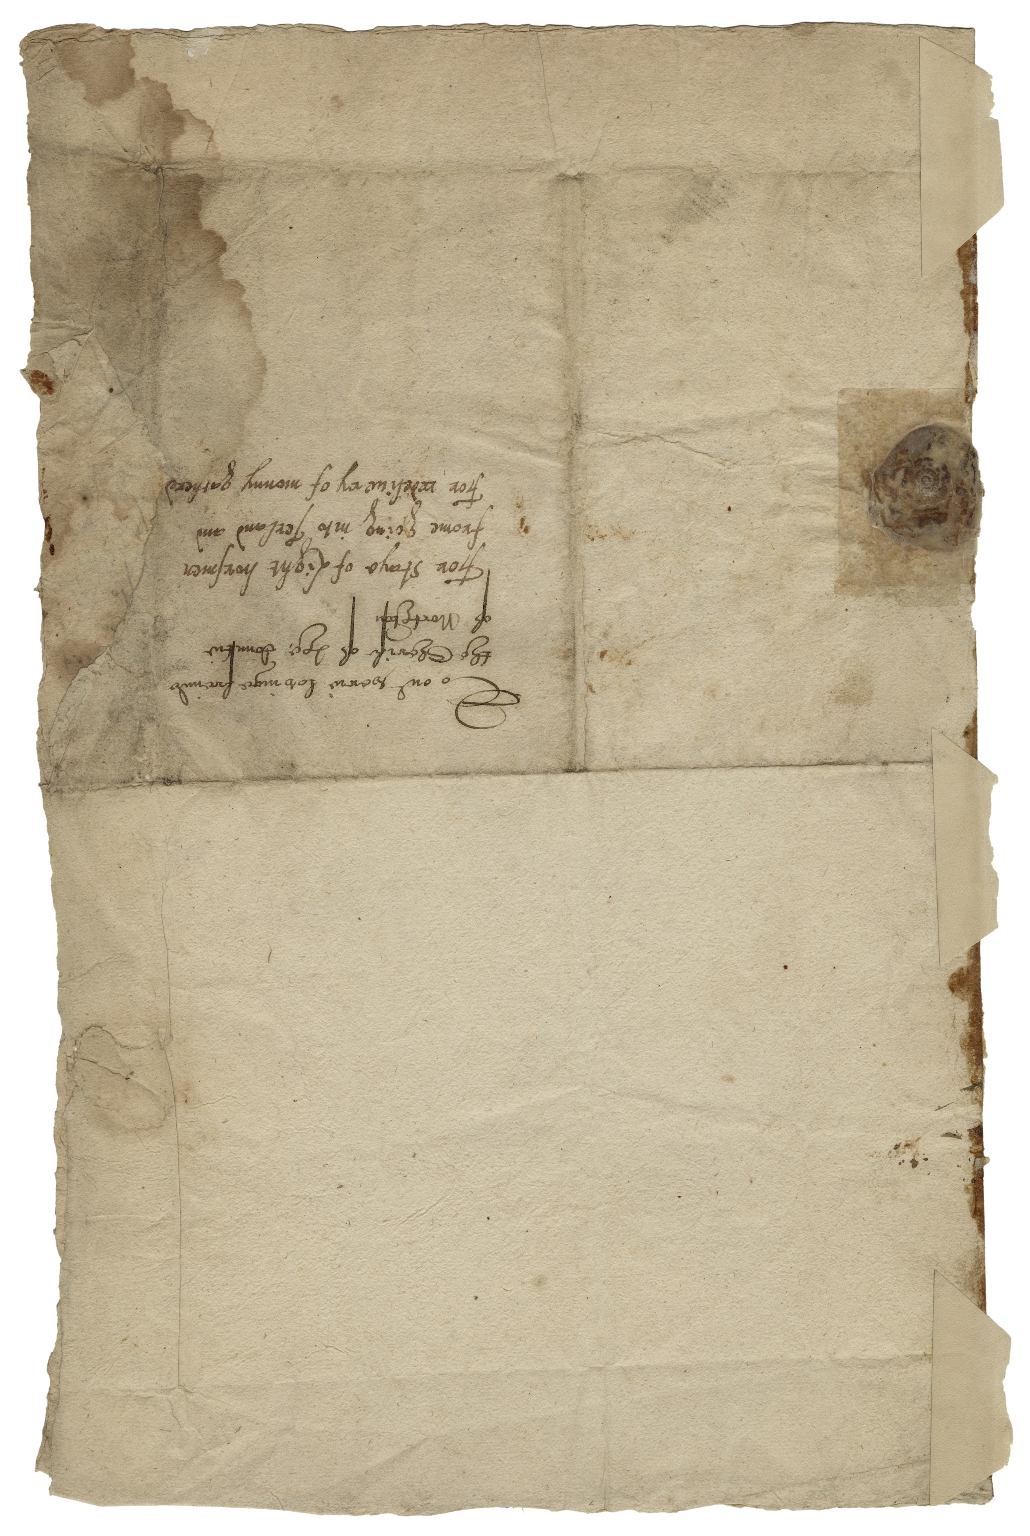 Letter signed from the Privy Council, Hampton House, to the Sherriff of Northamptonshire